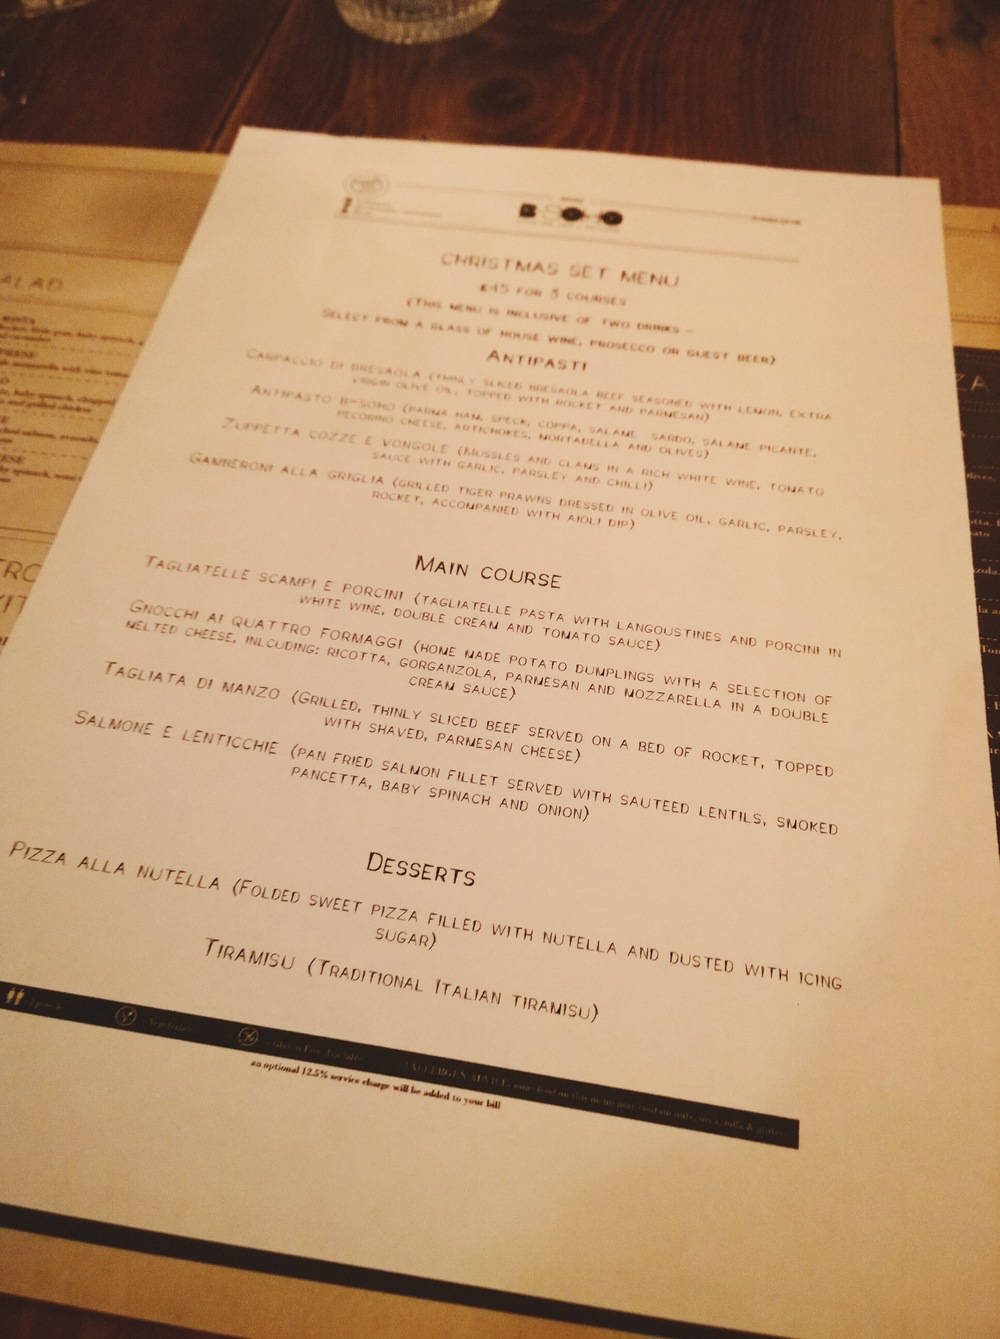 Bsoho christmas set menu